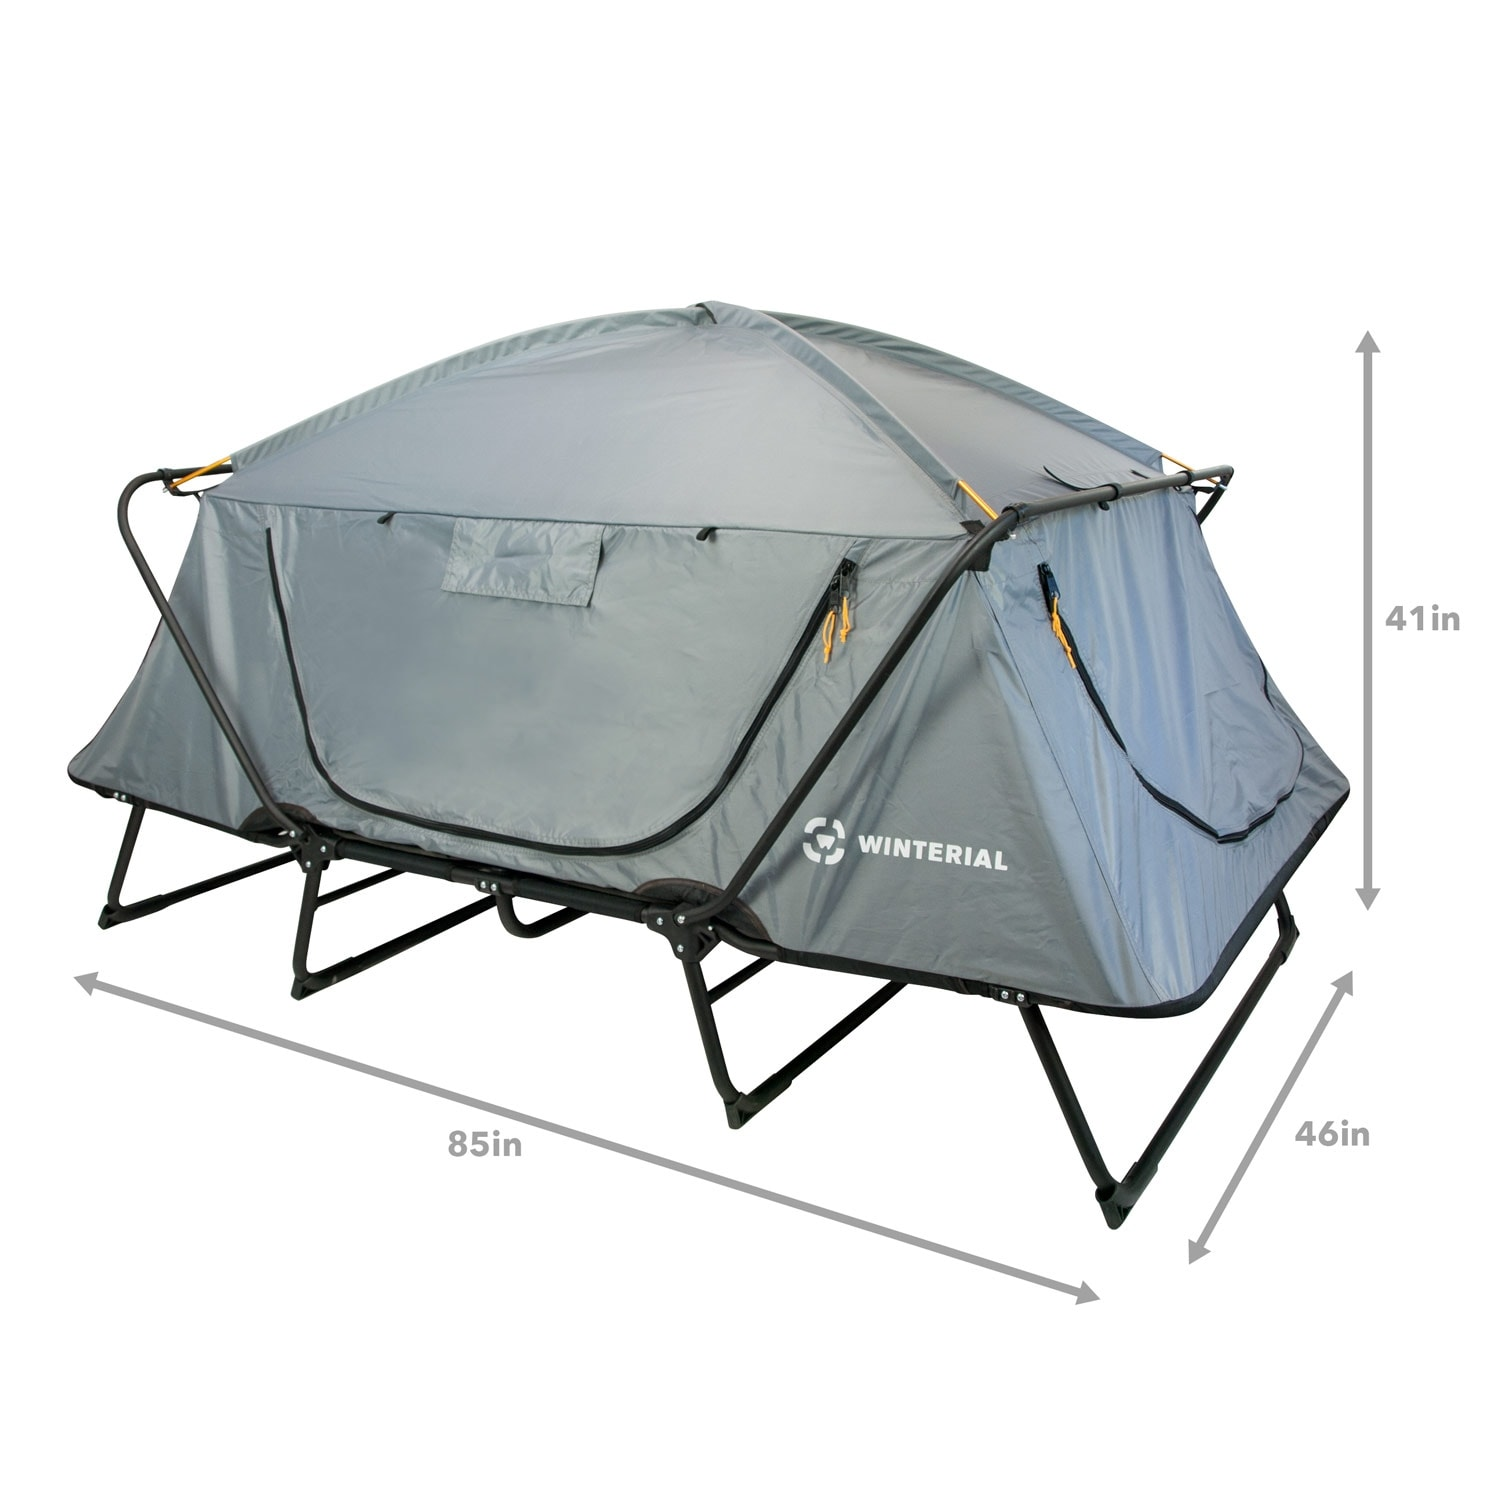 Winterial Oversize Outdoor Tent Cot / C&ing / Family - Free Shipping Today - Overstock.com - 18658592  sc 1 st  Overstock.com & Winterial Oversize Outdoor Tent Cot / Camping / Family - Free ...